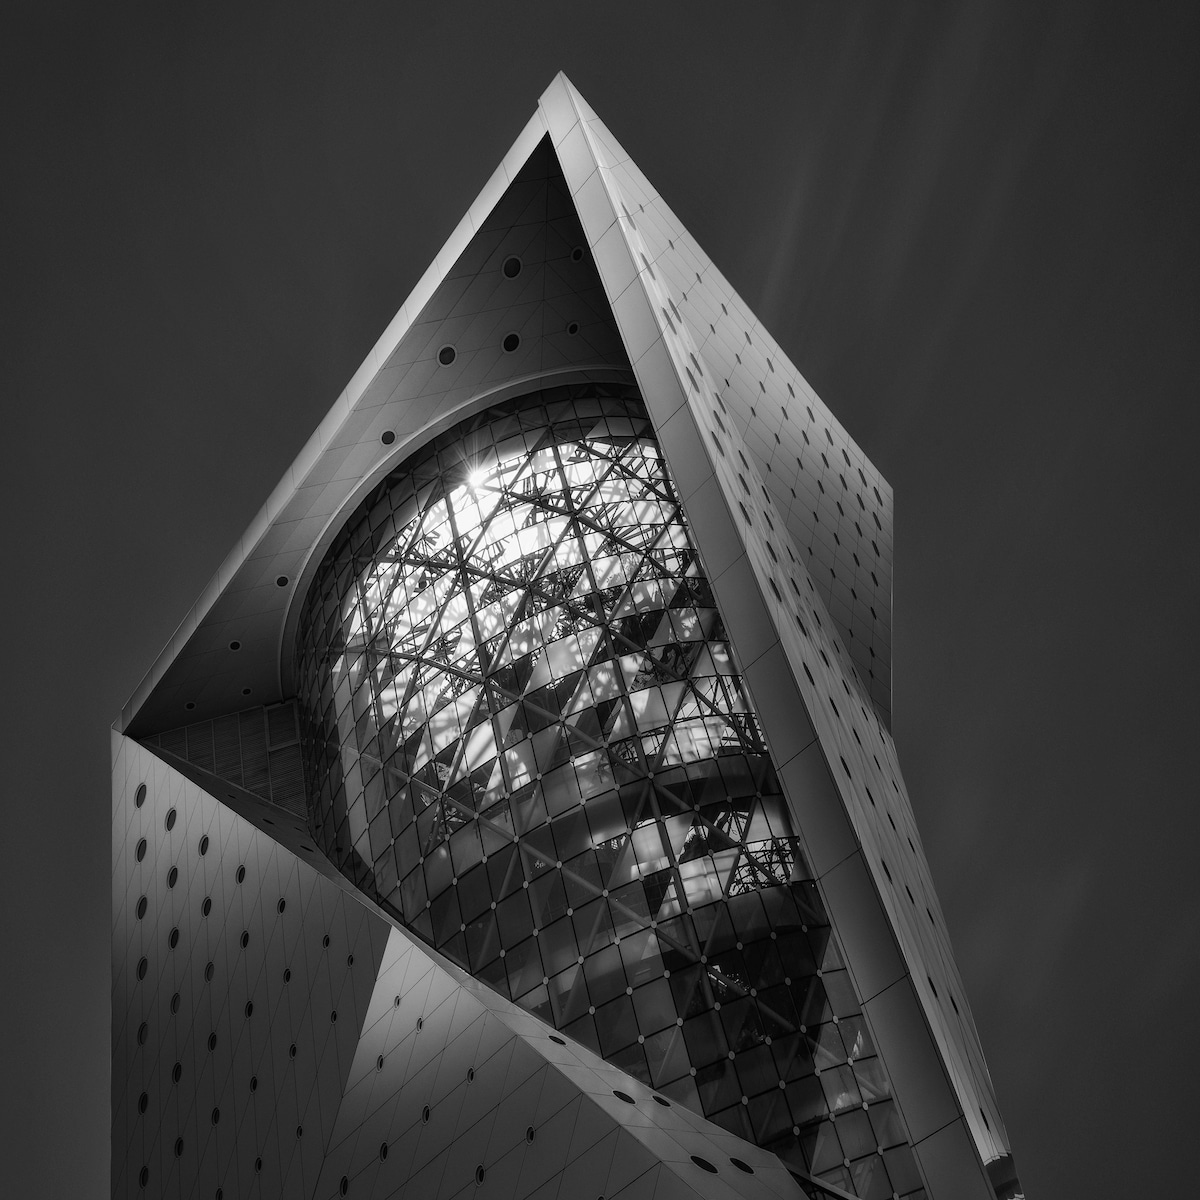 Black and White Artistic Photo of a Building